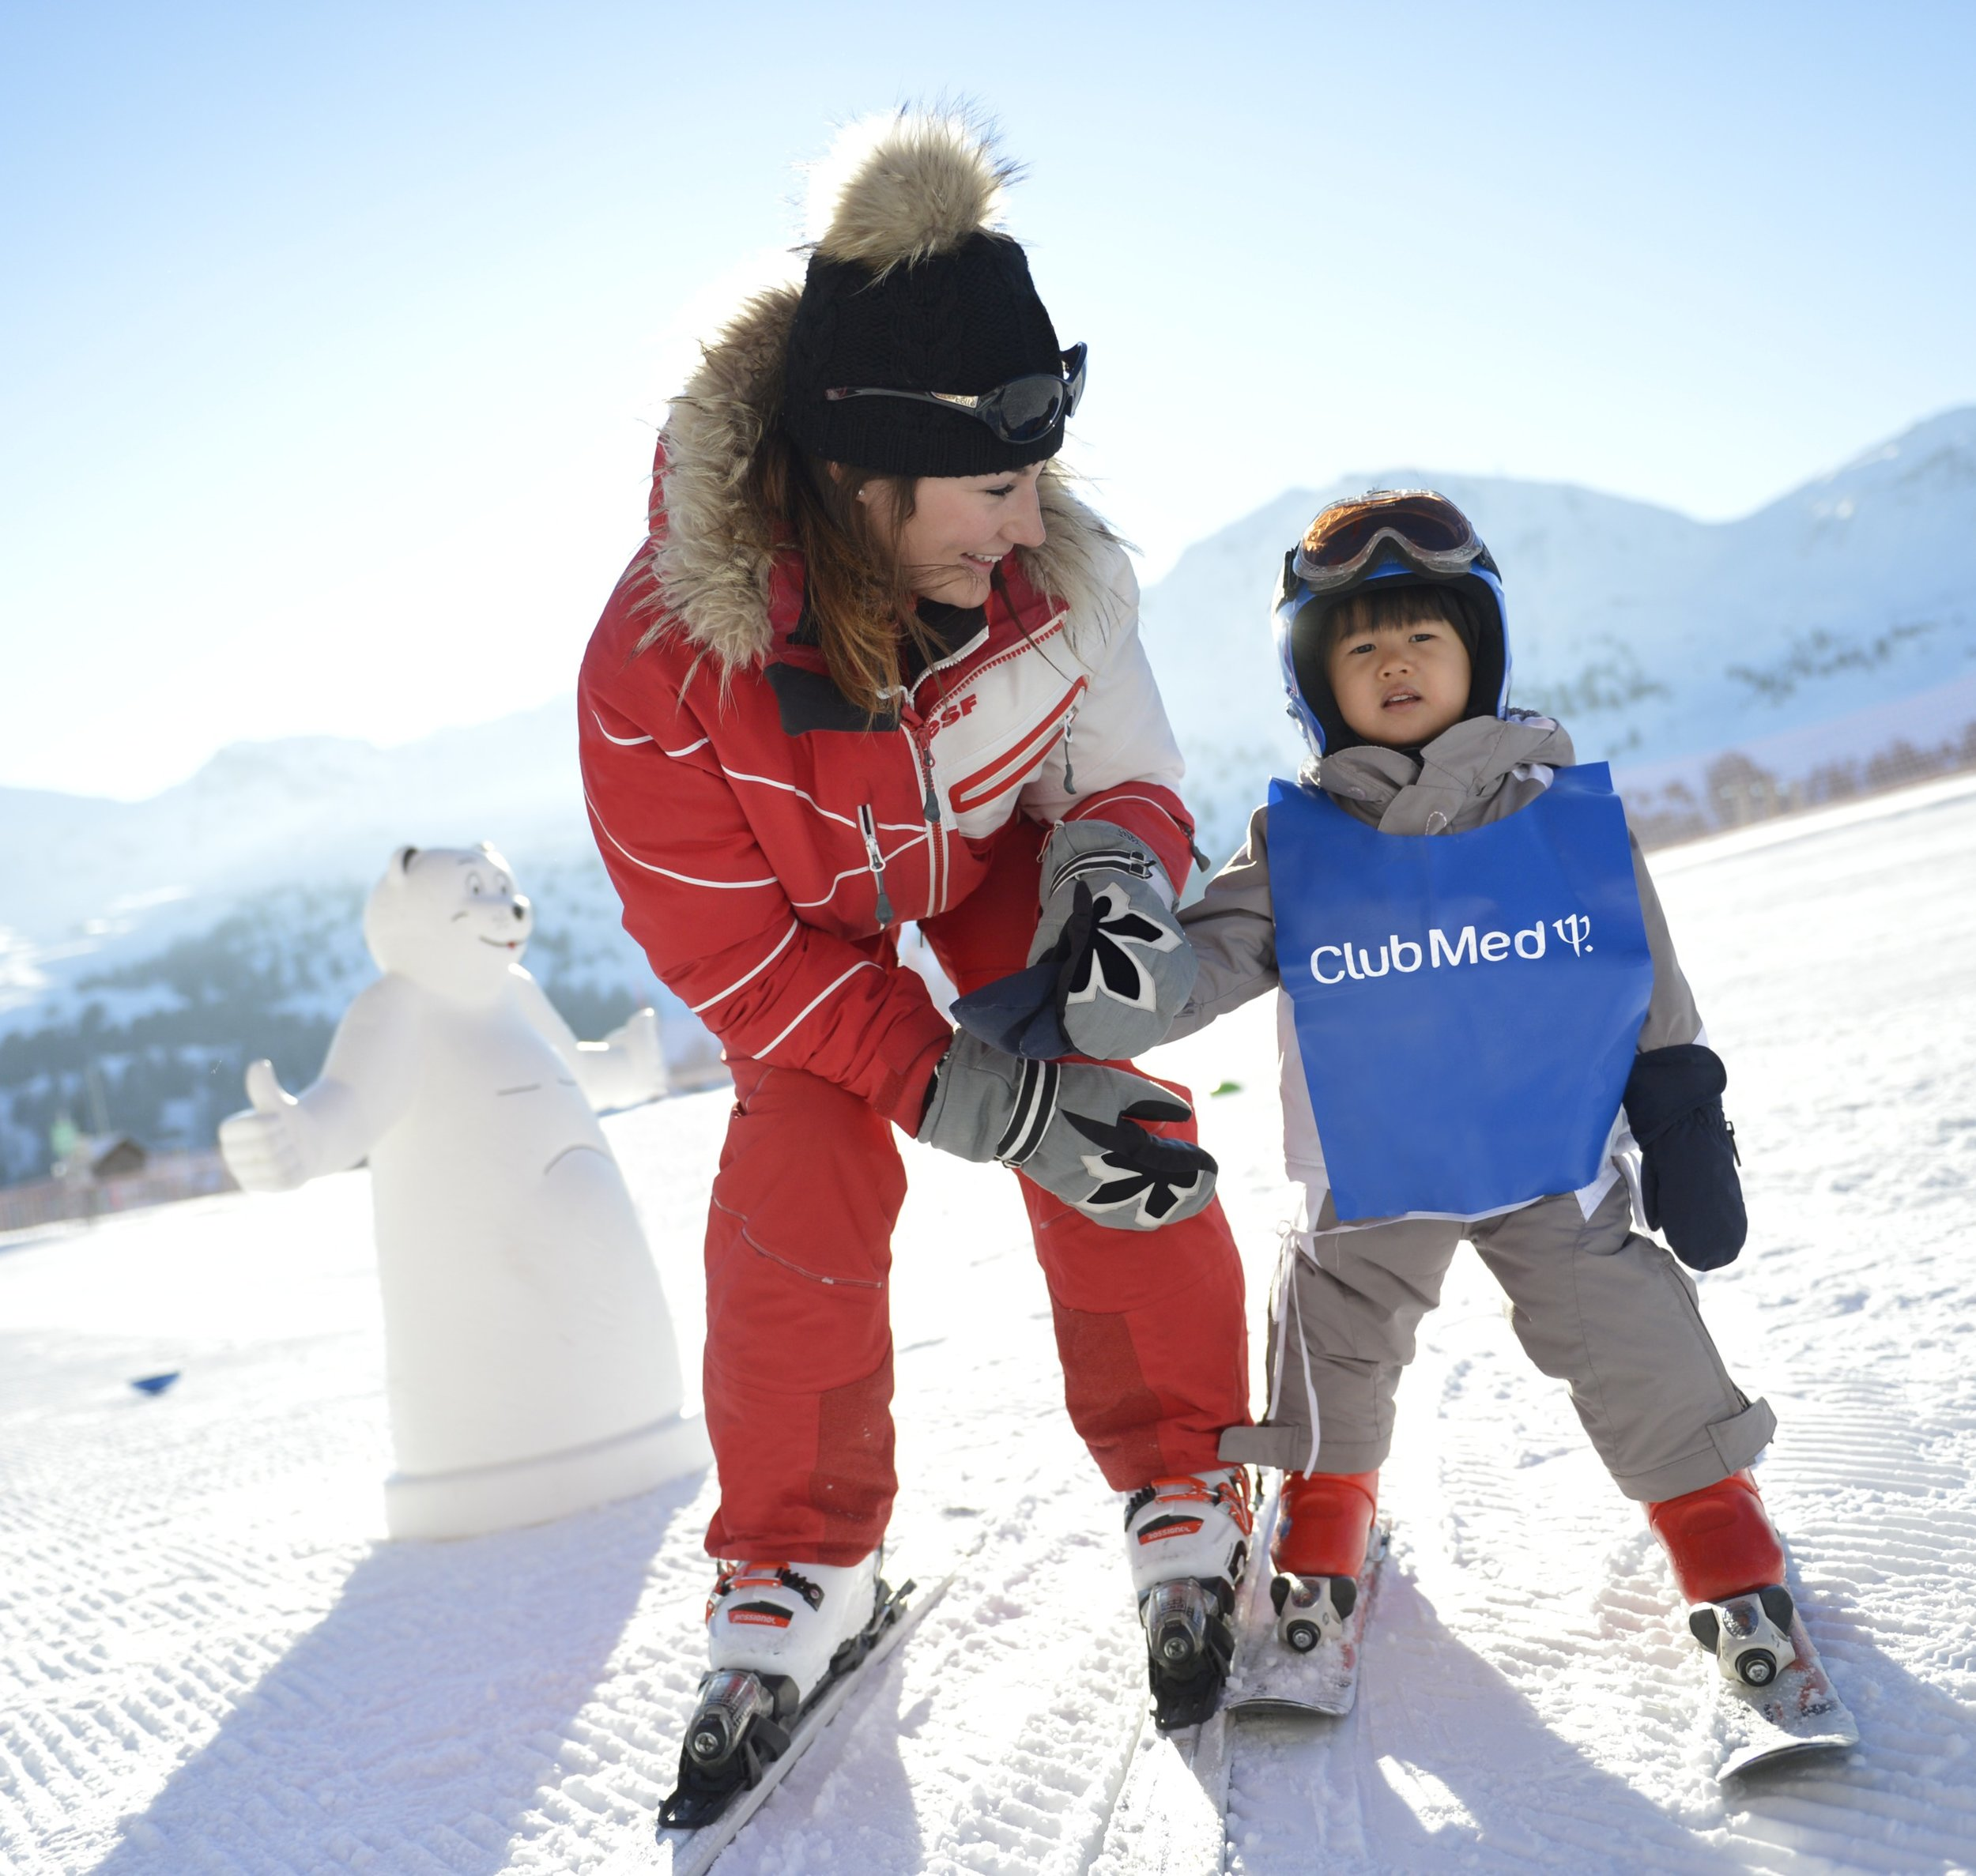 #3 A kid's paradise - Kids will have endless fun during their snow holidays! All activities and age-specific clubs were created with them in mind so they can enjoy the very best of their holiday away. Whether they take part in a group ski or snowboard lessons for all levels of experience with English-speaking instructors or have fun in the Kids Clubs - we'll take care of everything to make their time amazing.